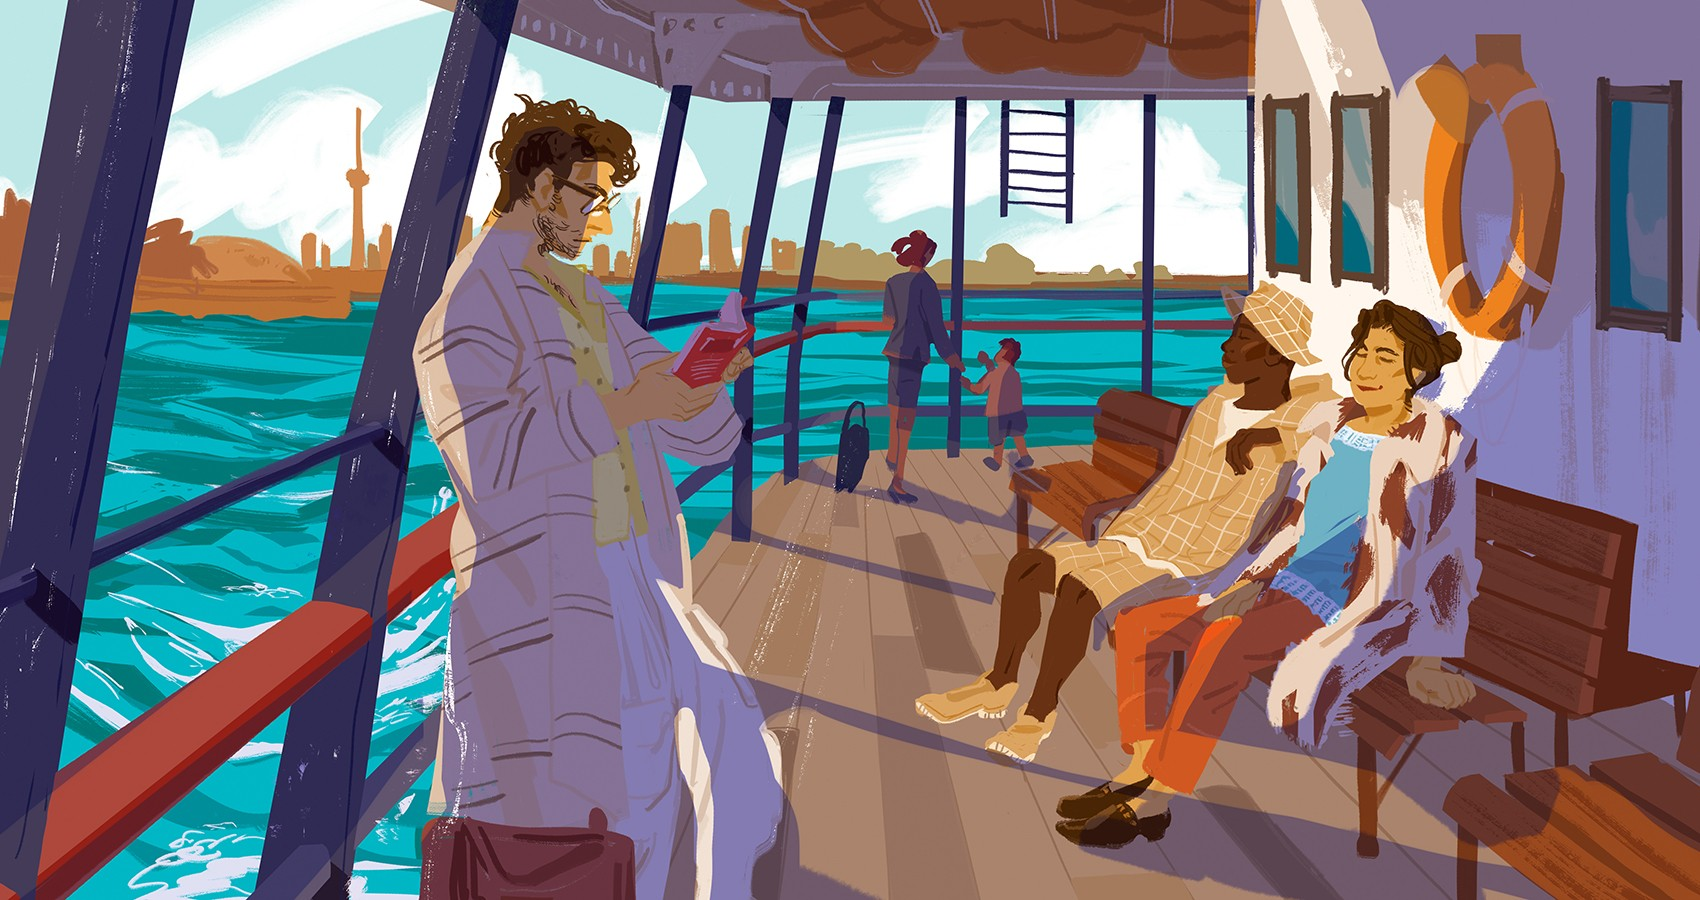 several figures resting on a ferry, the ocean is visible past the boat railing